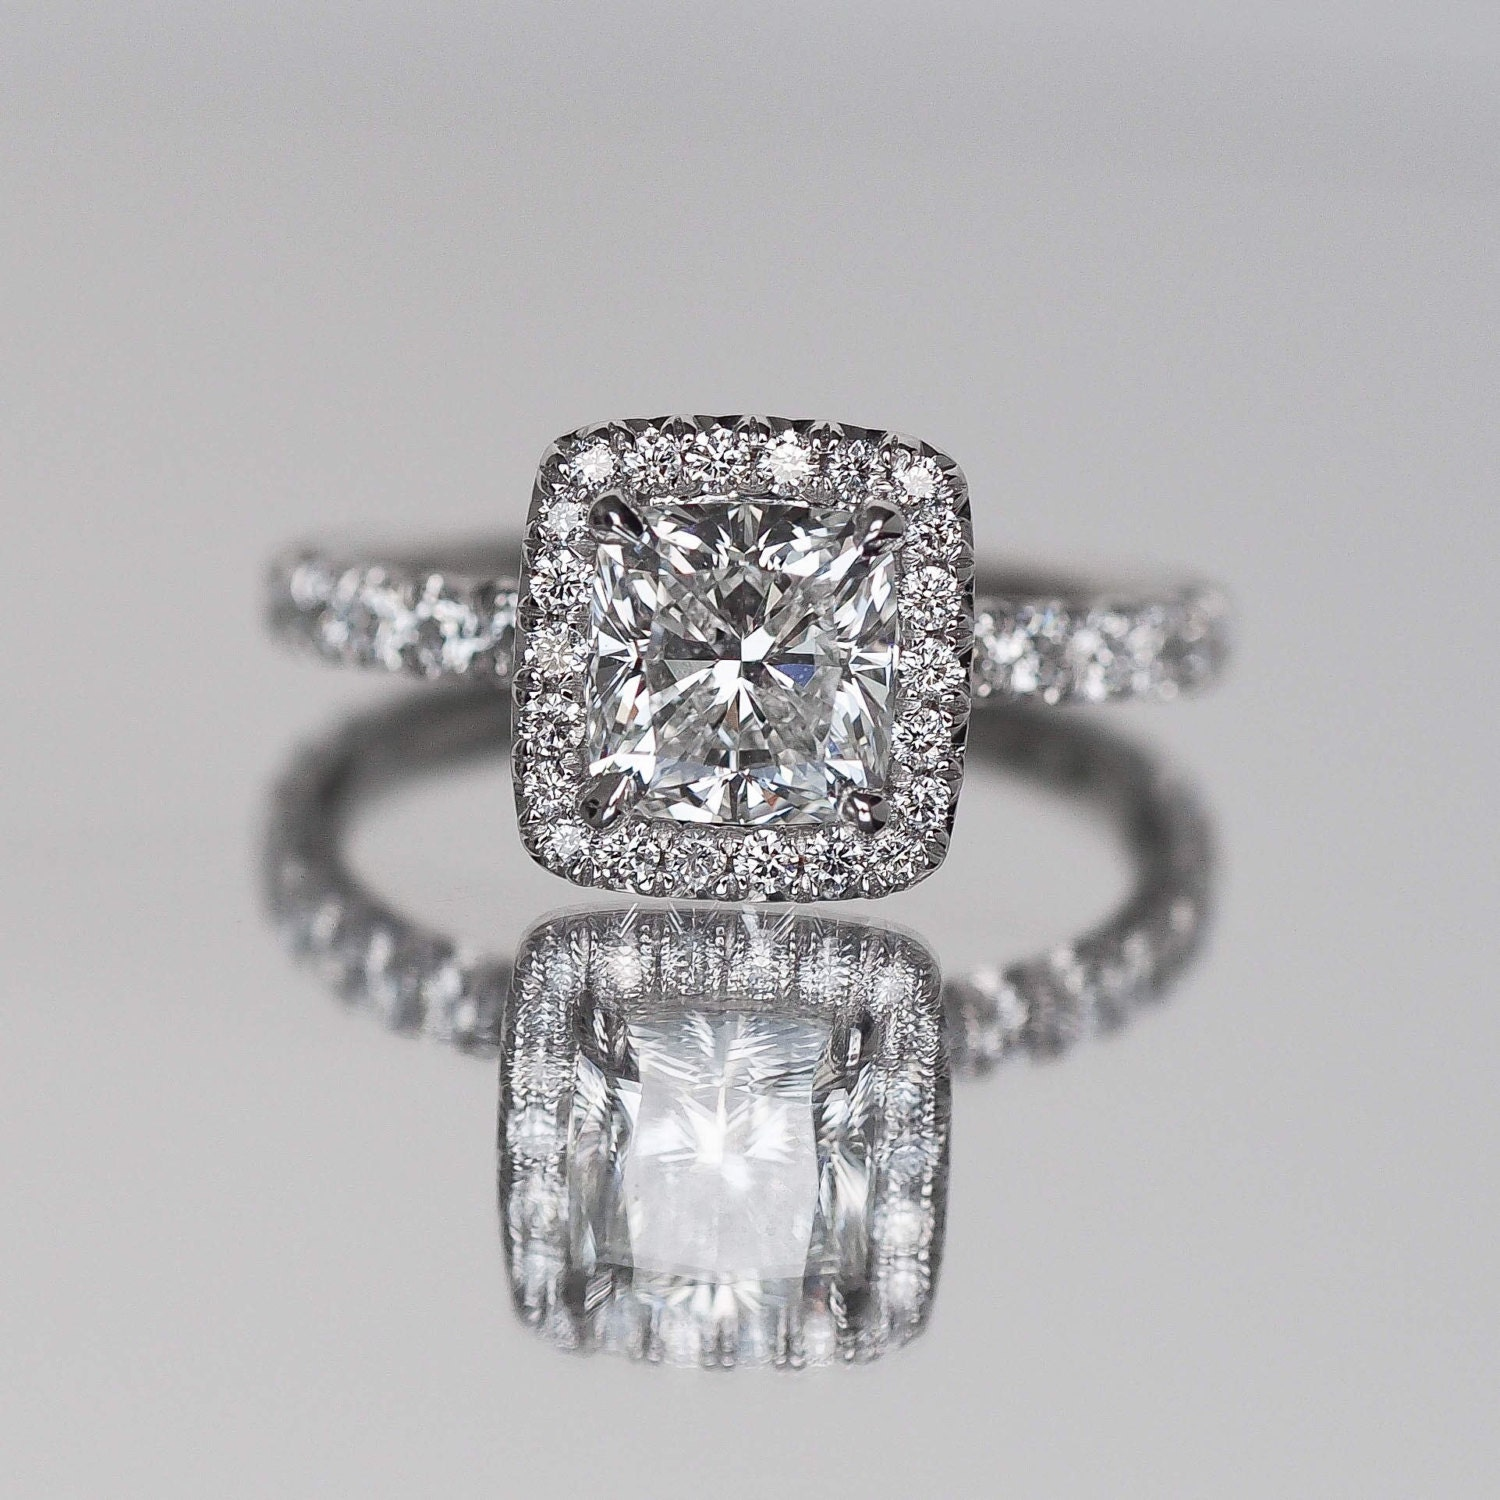 cush profile vintage sadie products low cut engagement diamond rings in moiss white cushion center moissanite ring kristin gold vint mod halo